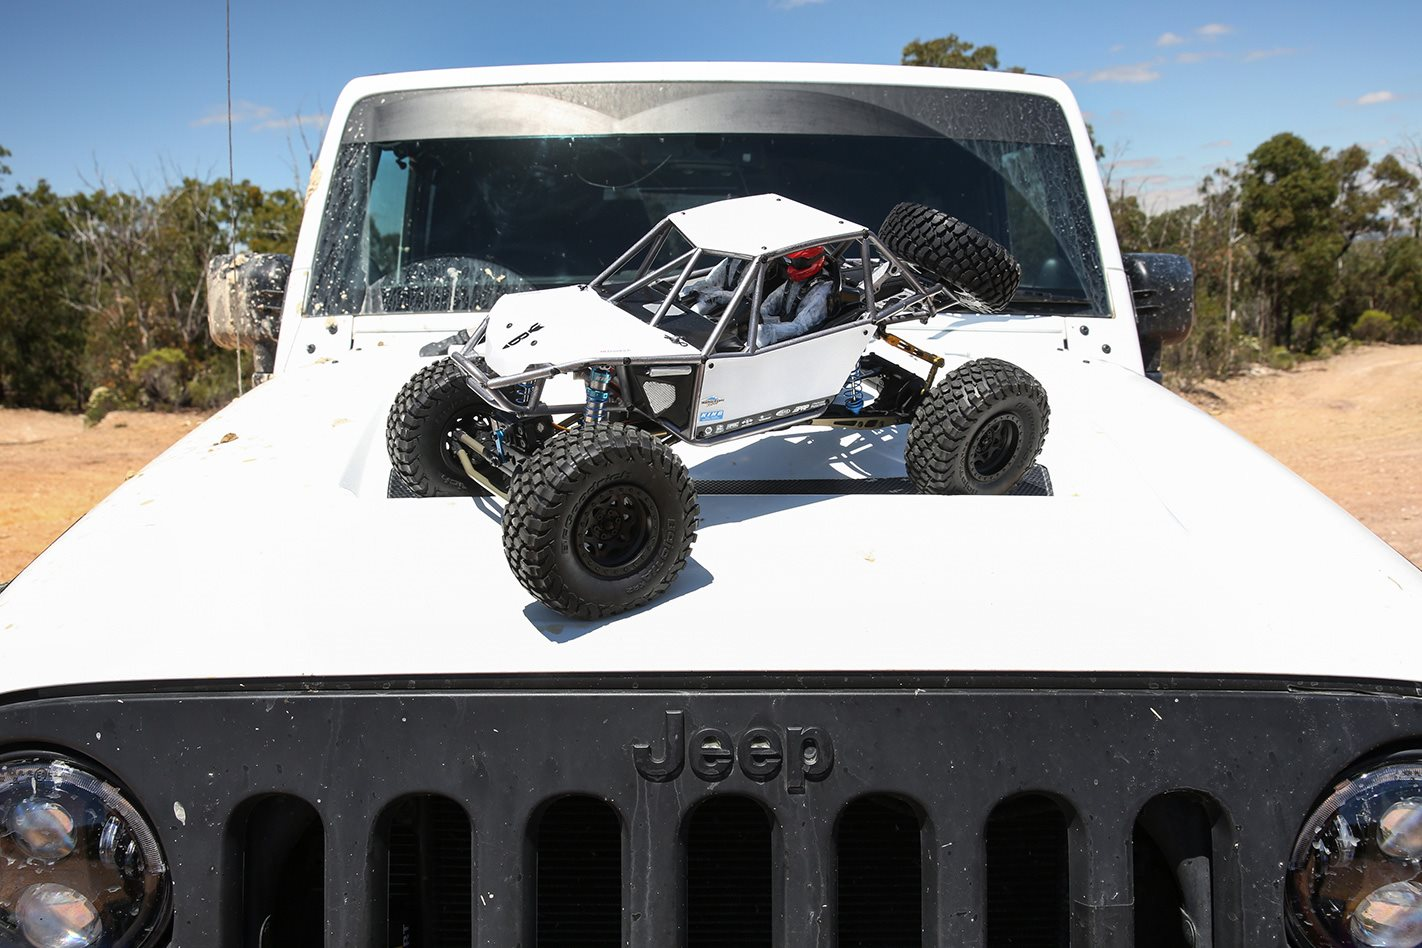 Axial Bomber RR10 jeep